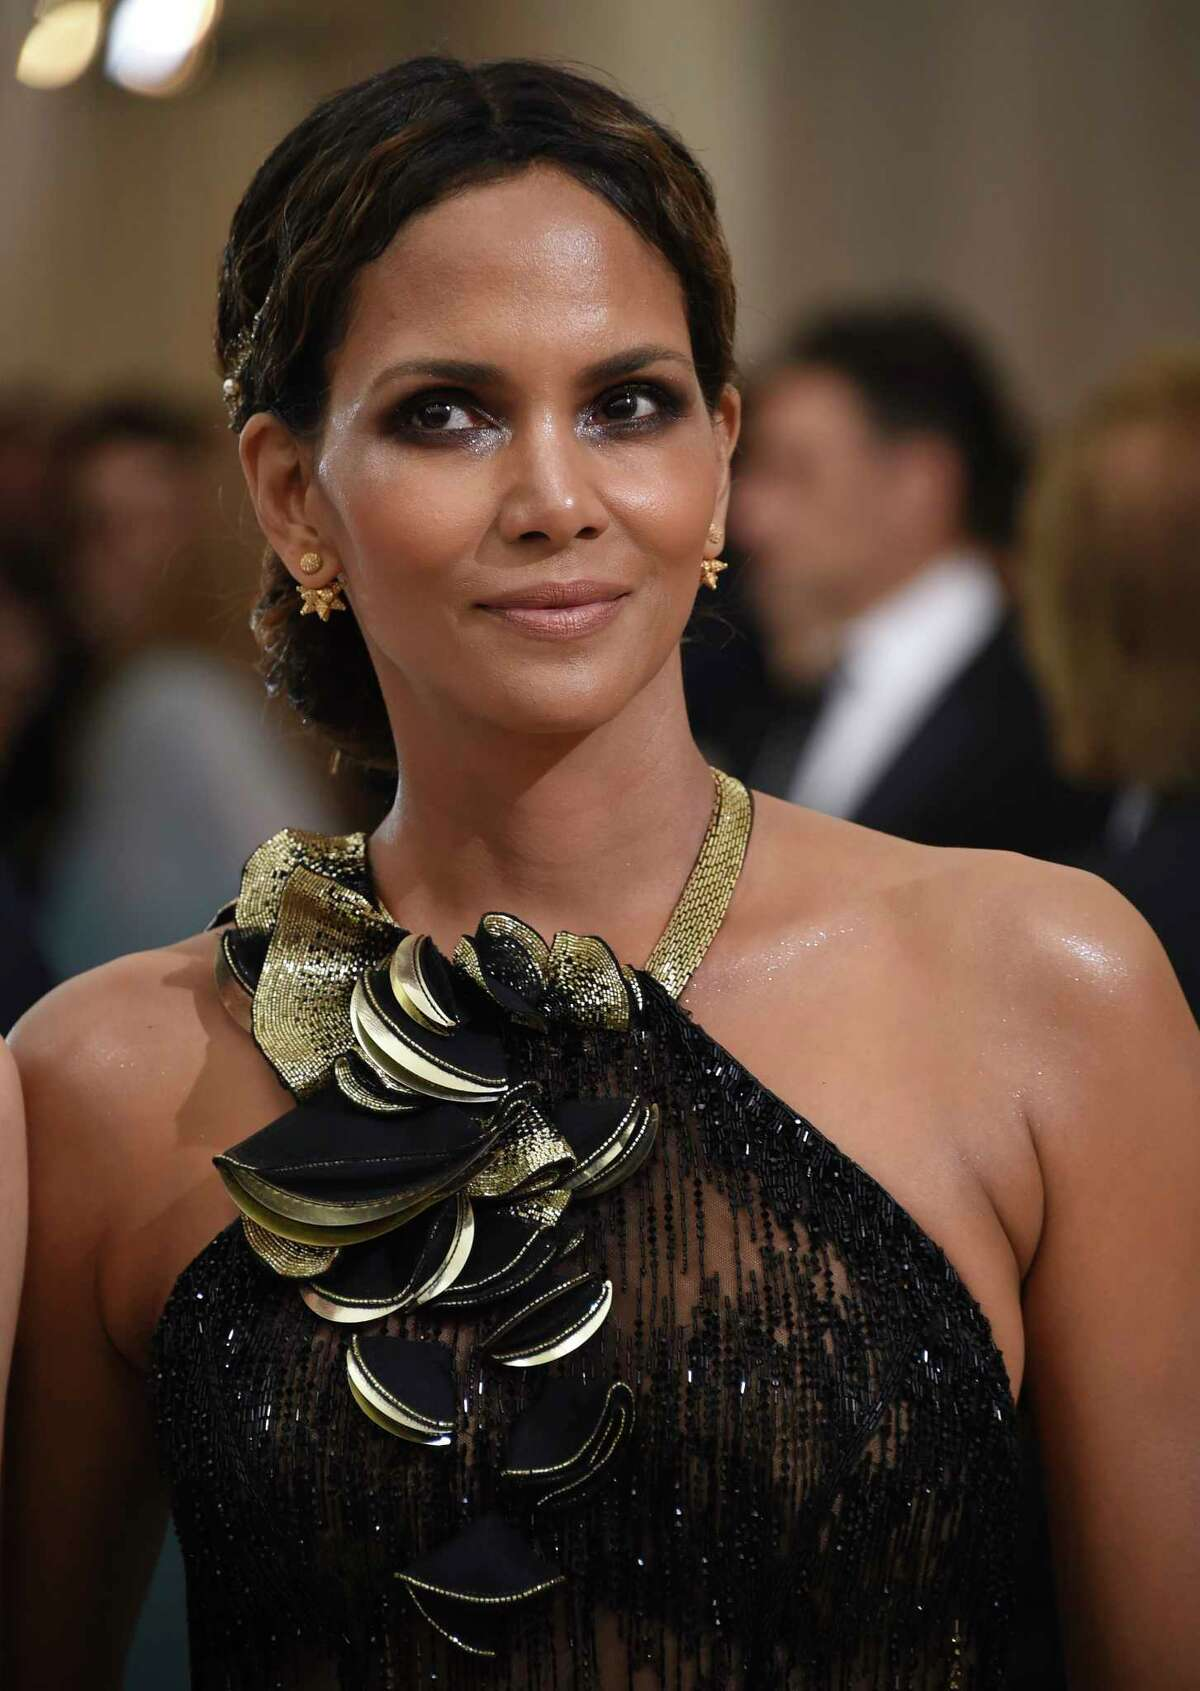 Halle Berry attends The Metropolitan Museum of Art's Costume Institute benefit gala celebrating the opening of the Rei Kawakubo/Comme des Garcons: Art of the In-Between exhibition on Monday, May 1, 2017, in New York. (Photo by Evan Agostini/Invision/AP) ORG XMIT: NYET166